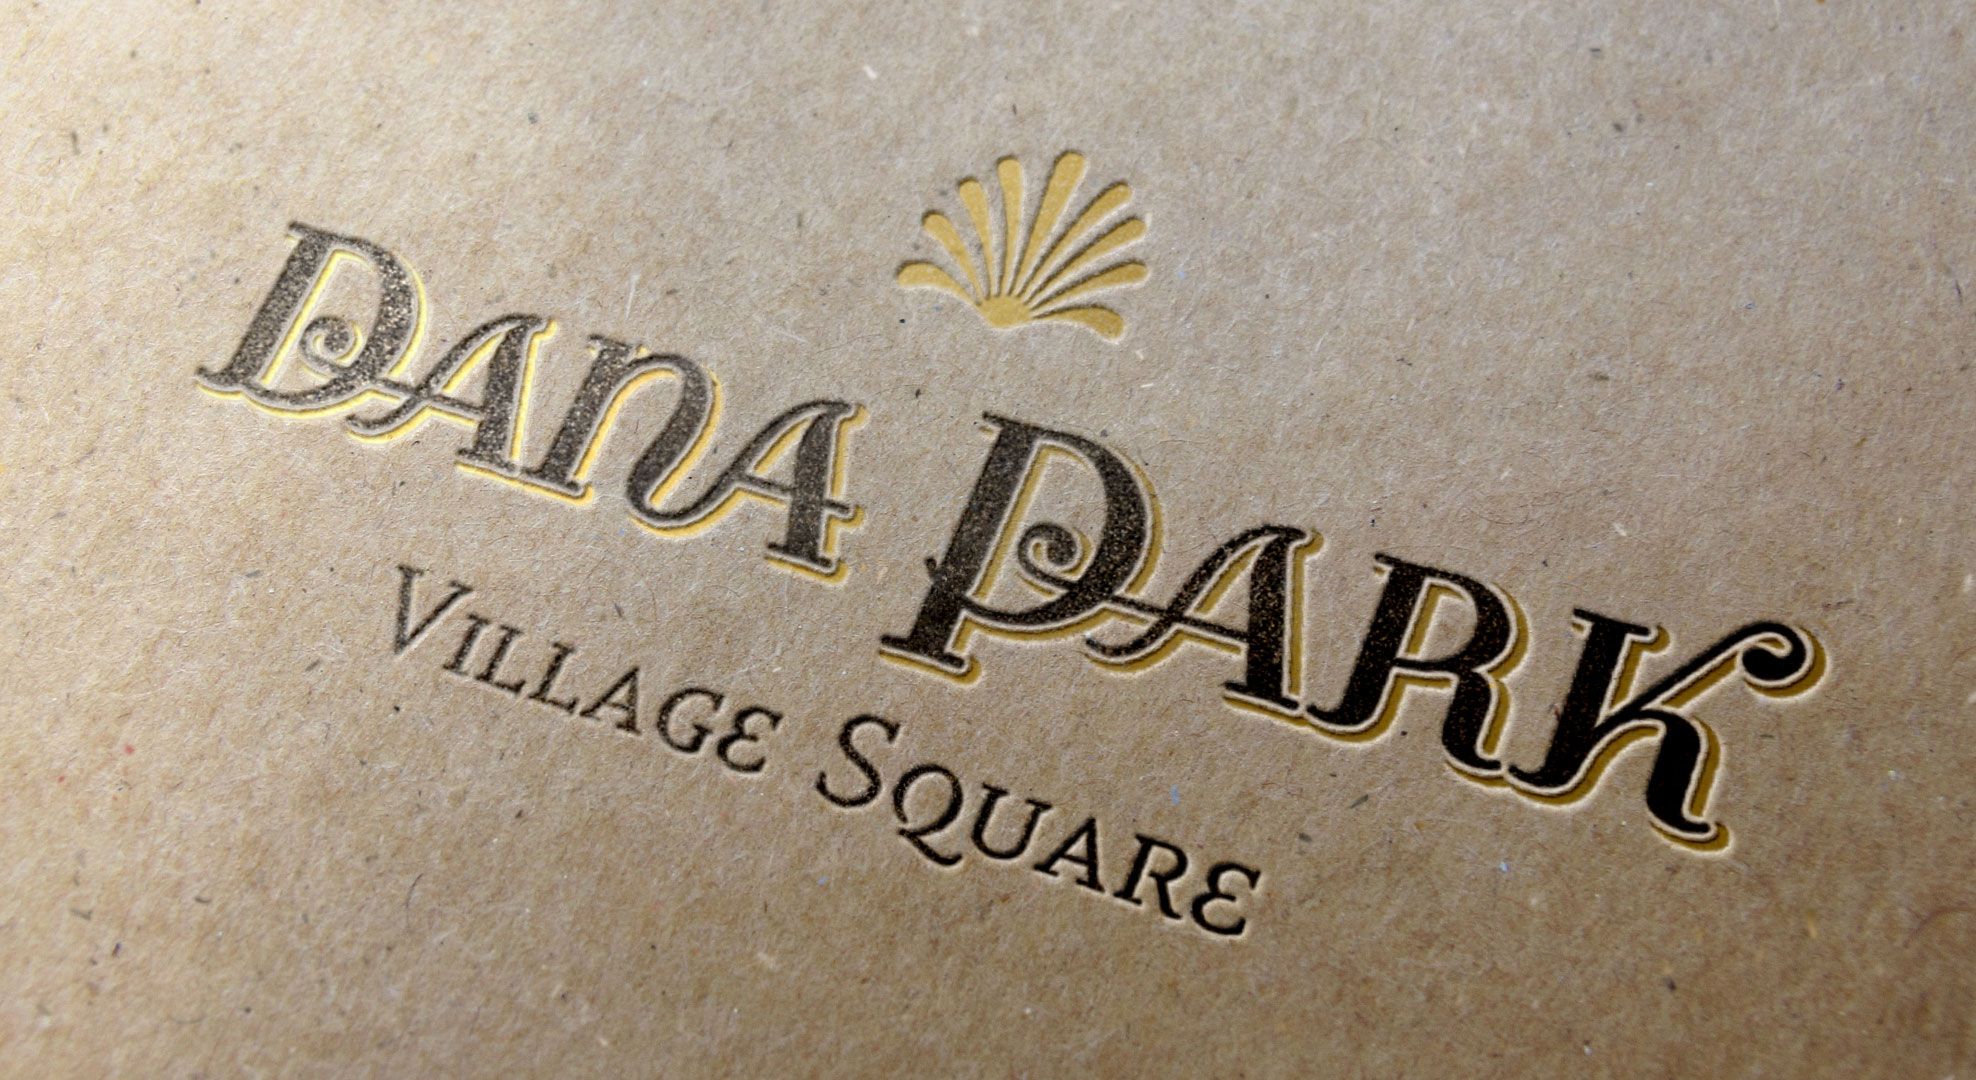 Dana Park Village Square